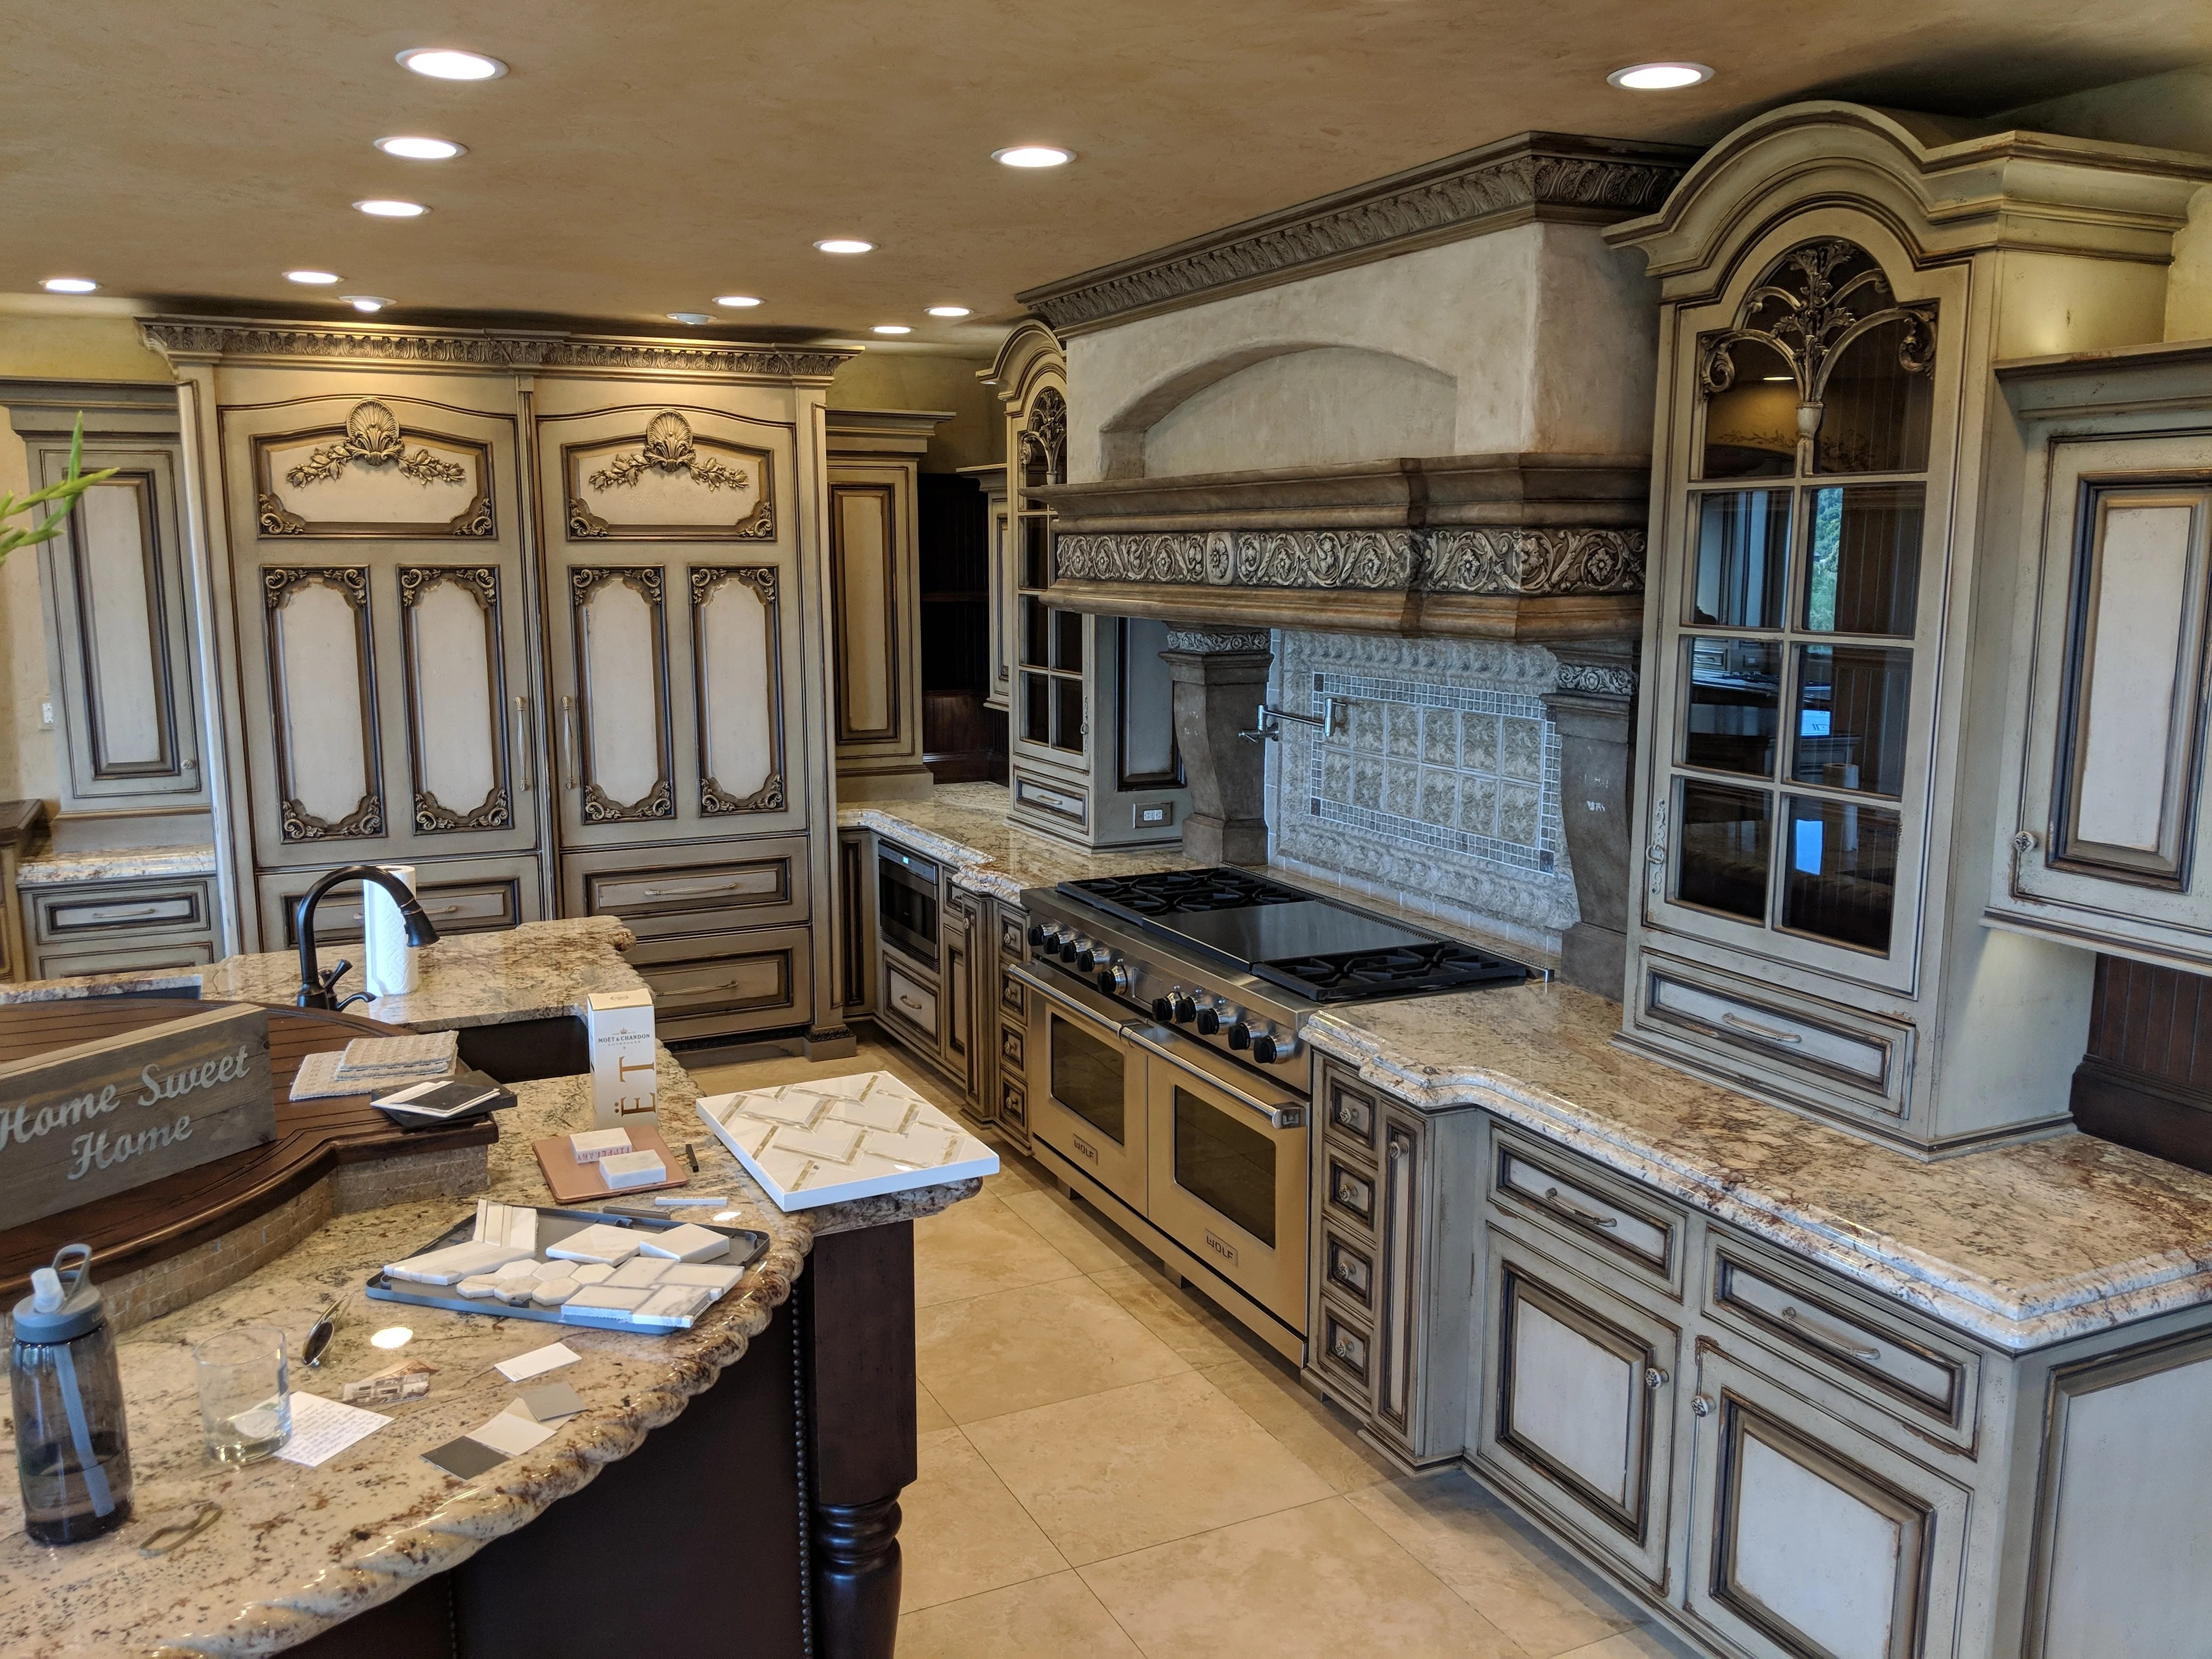 antiqued kitchen cabinets storage free standing gigantic like new frameless glazed distressed cabinet ben s repurposed cabinetry